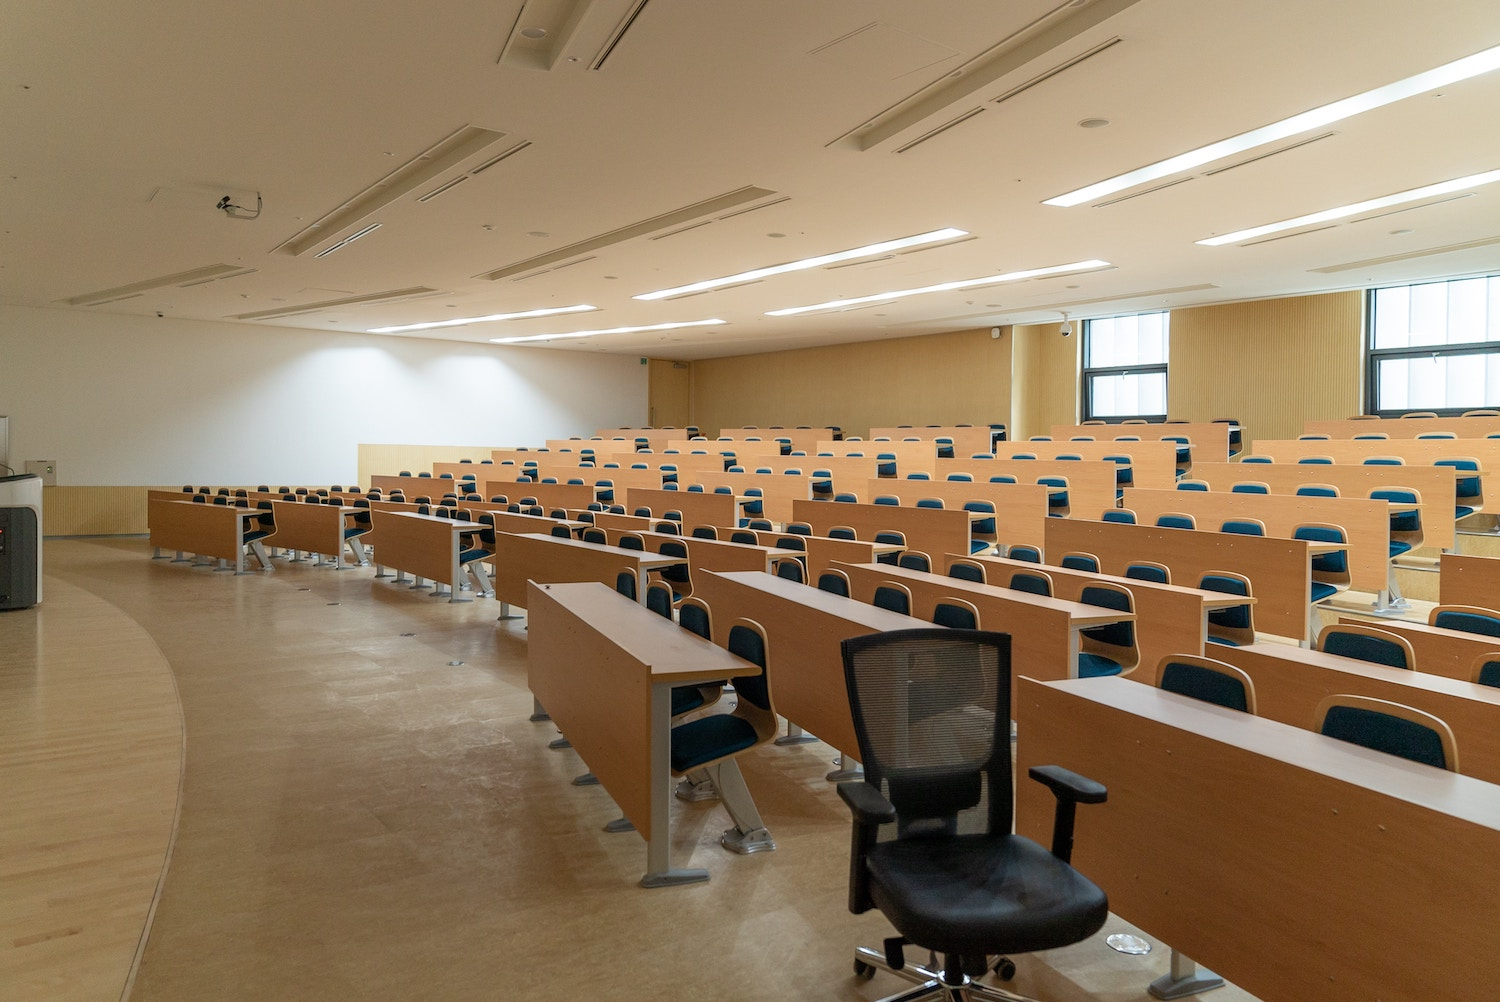 This is an image of an empty university lecture hall used to illustrate the fact that there was low webinar attendance early on in Acuity's webinar program.